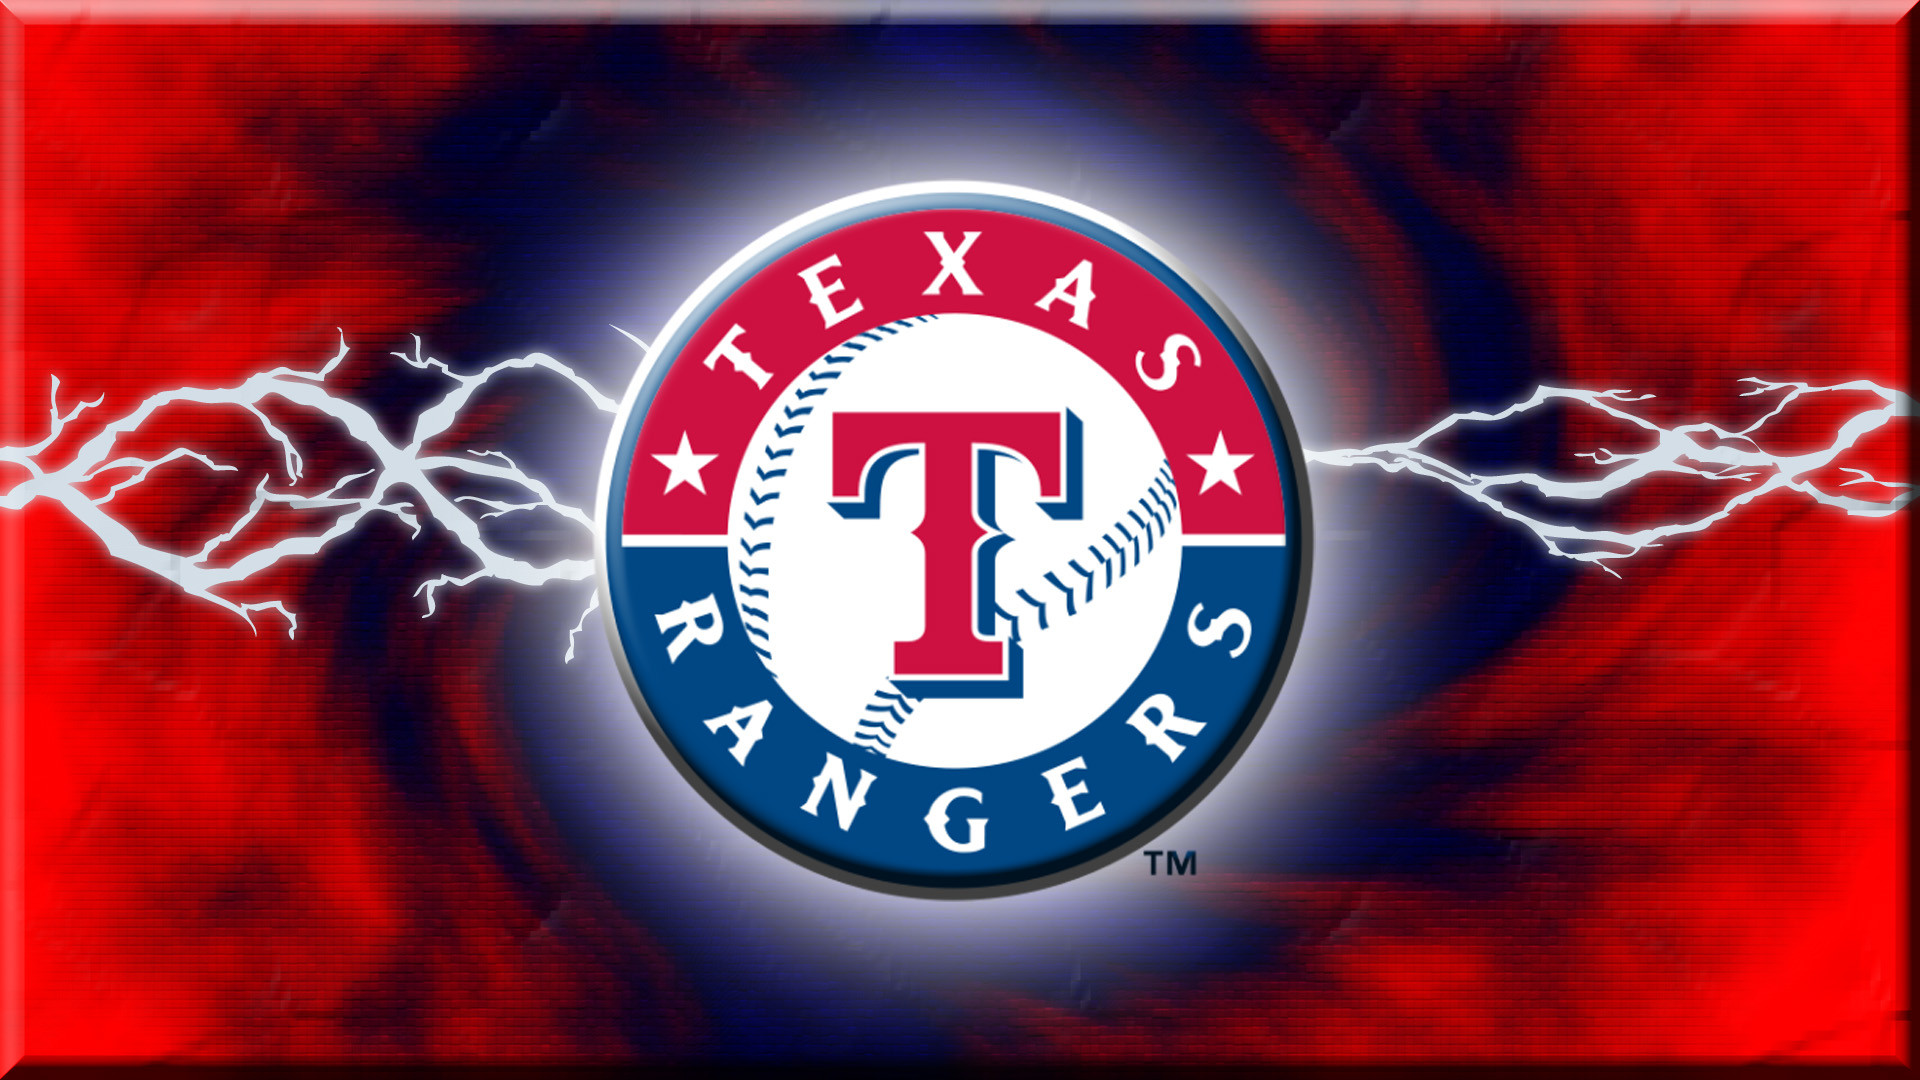 Res: 1920x1080, Texas Rangers Wallpapers 3 - 1920 X 1080